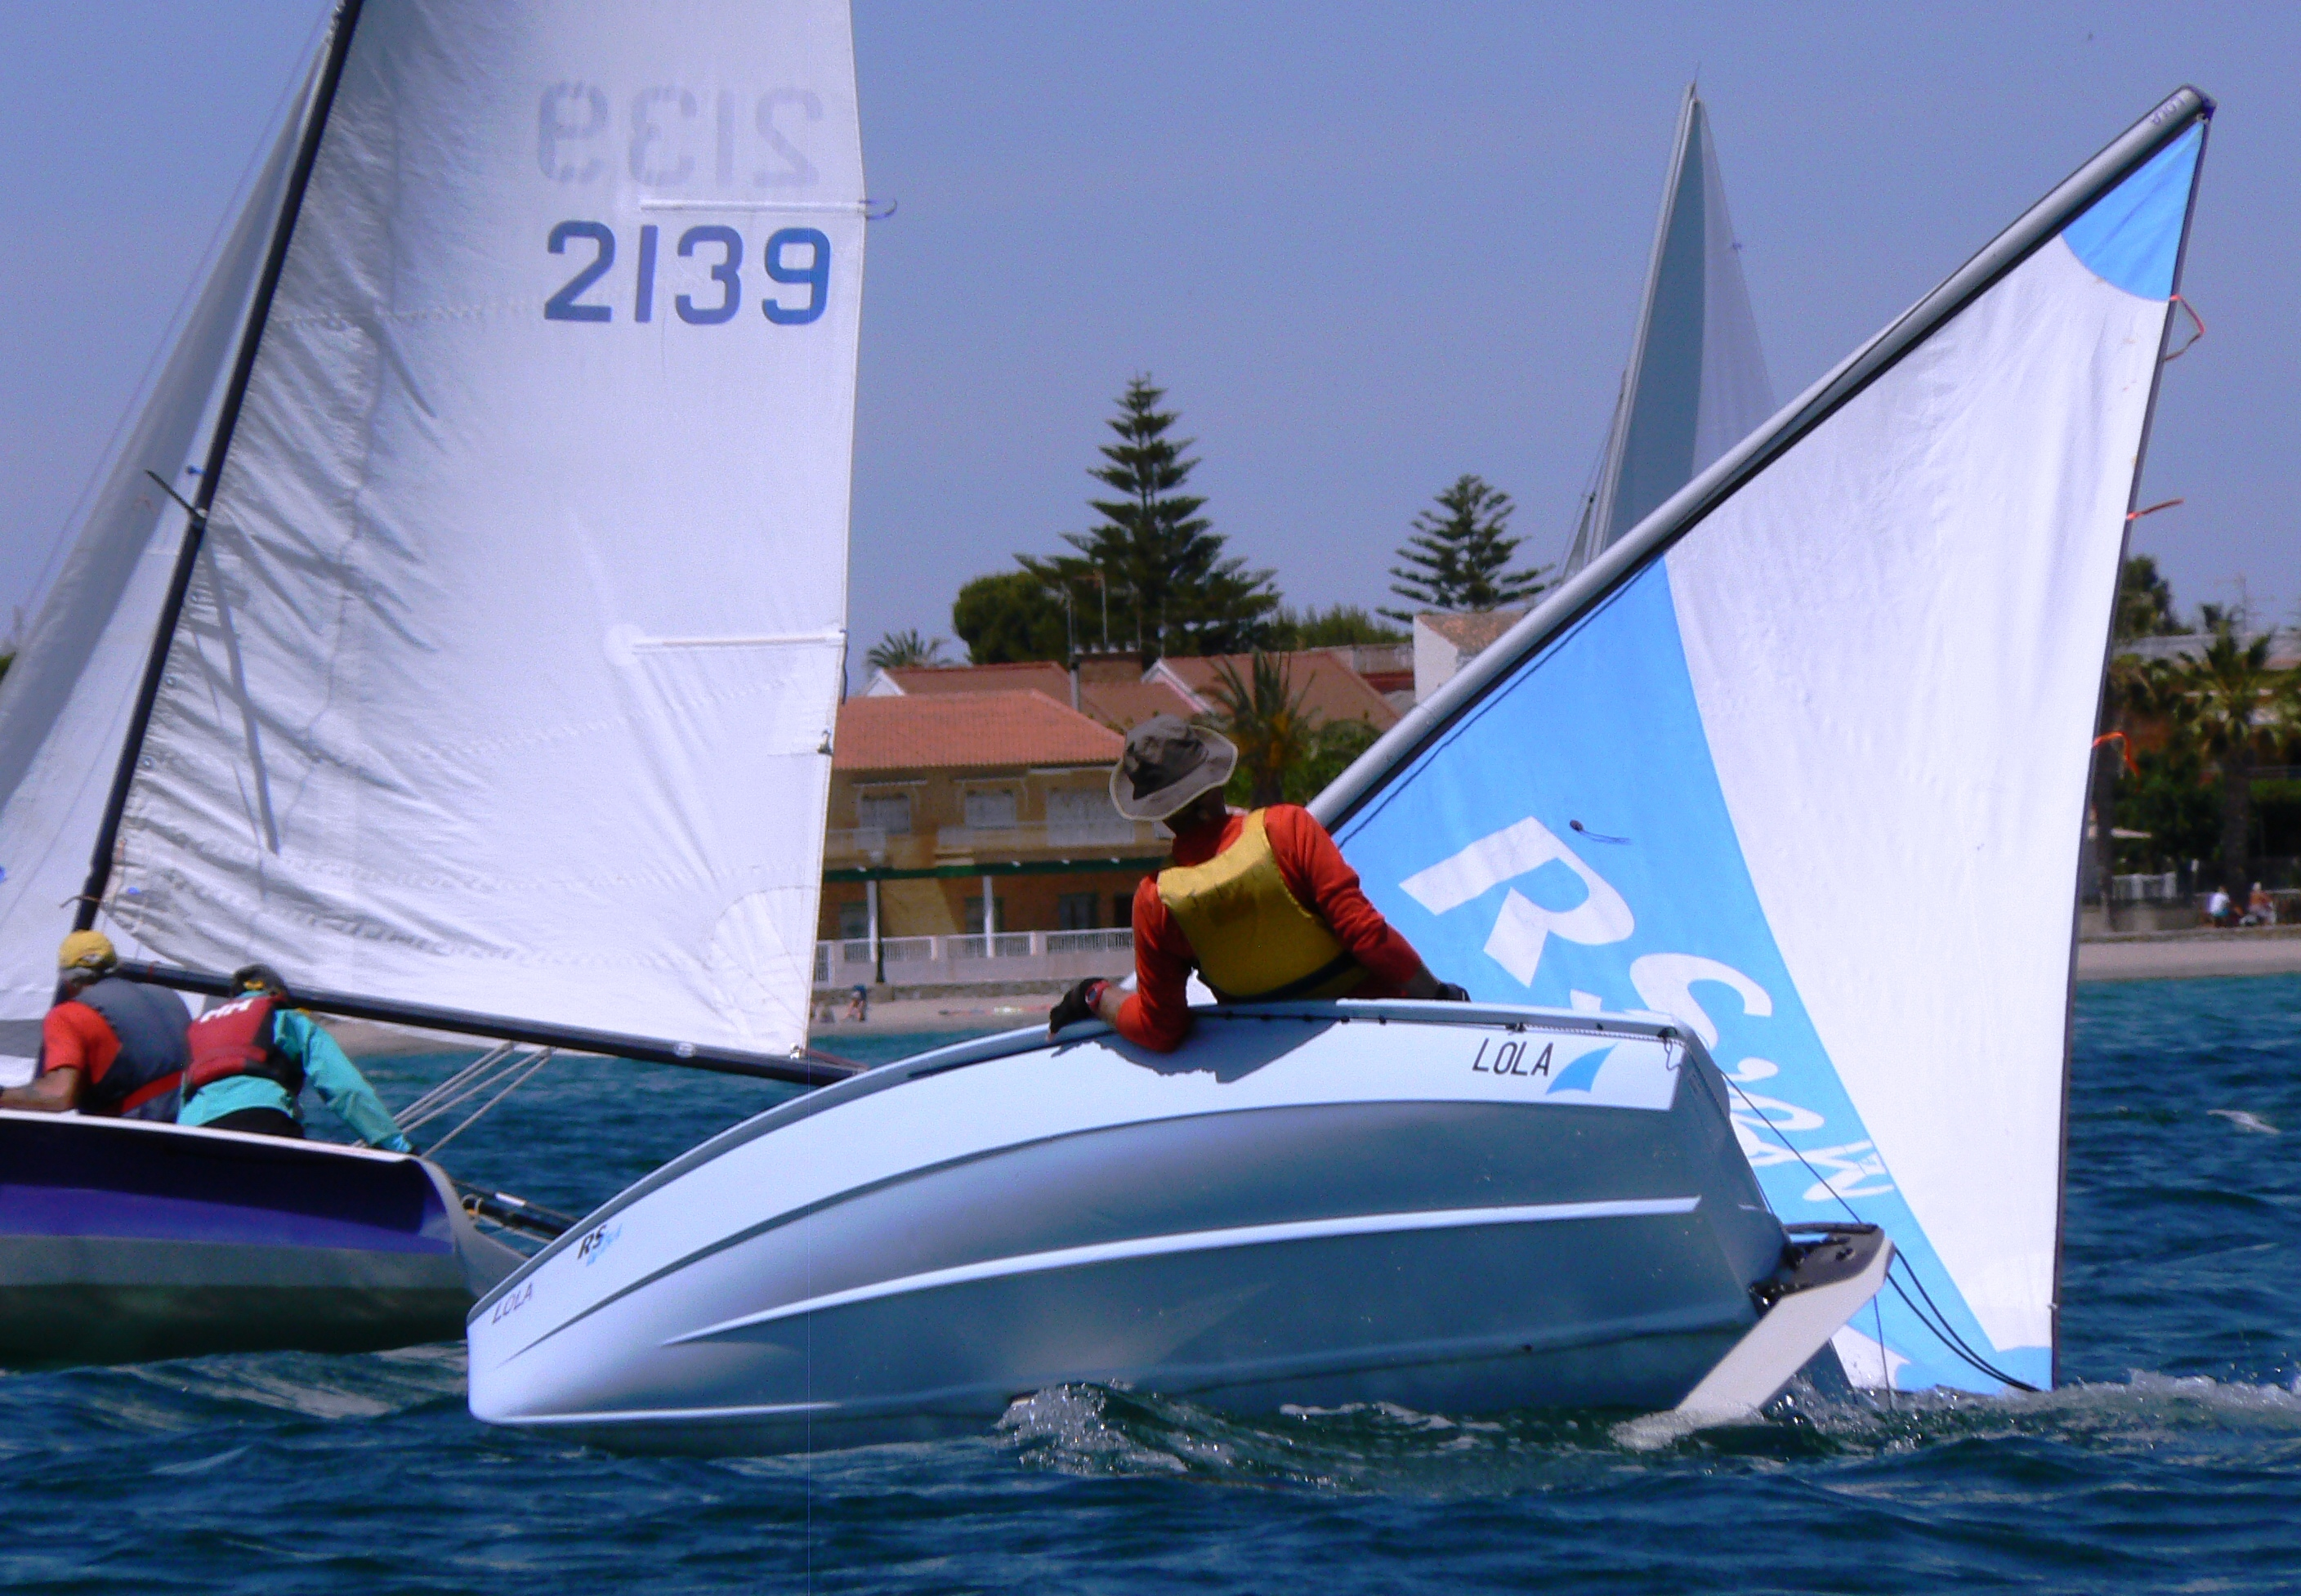 Wind conditions make for interesting SAMM Racing